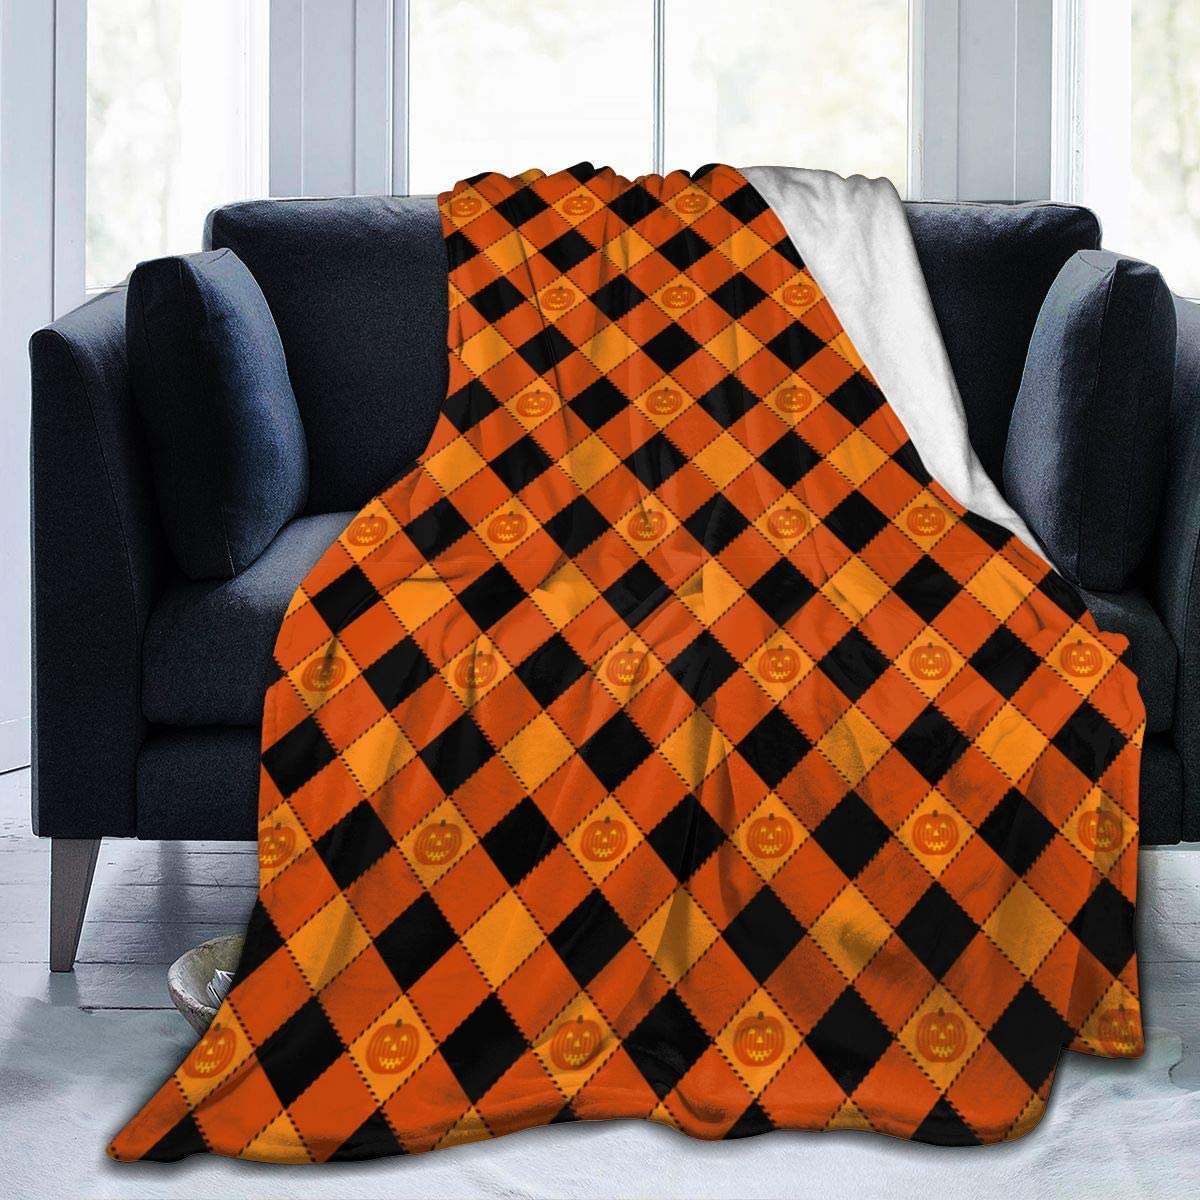 ARTIEMASTER Happy Halloween Pumpkin Flannel Blanket Throw Cozy Soft Quilt Fit Office Dormitory Home Farmhouse Travel for Adult 80X60 Inch